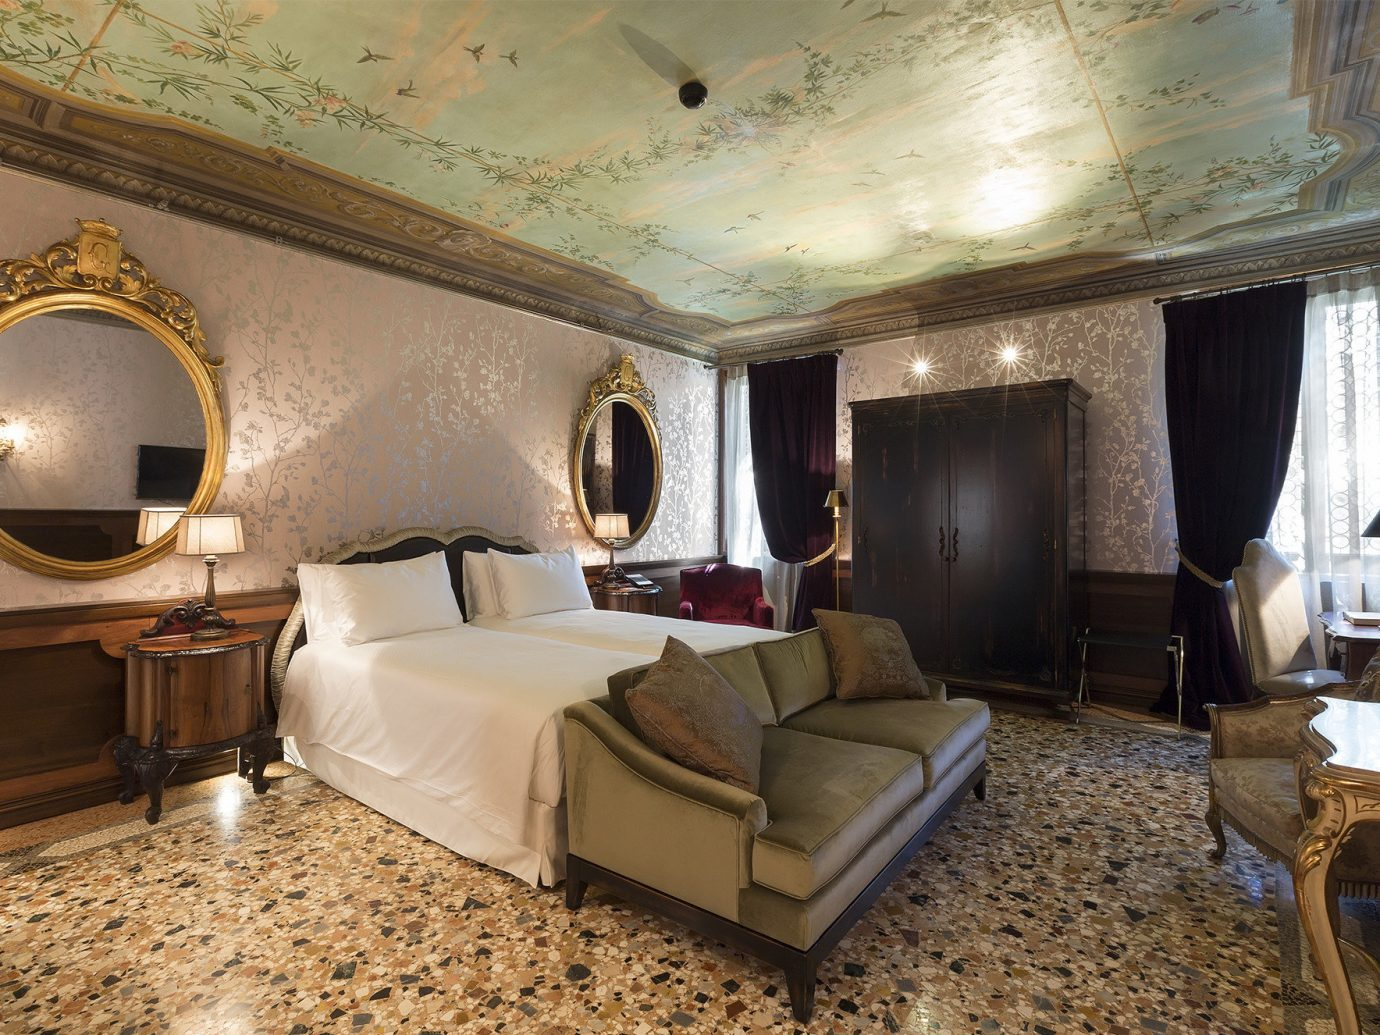 Hotels Italy Luxury Travel Venice indoor wall floor room ceiling Suite interior design estate hotel living room Bedroom furniture